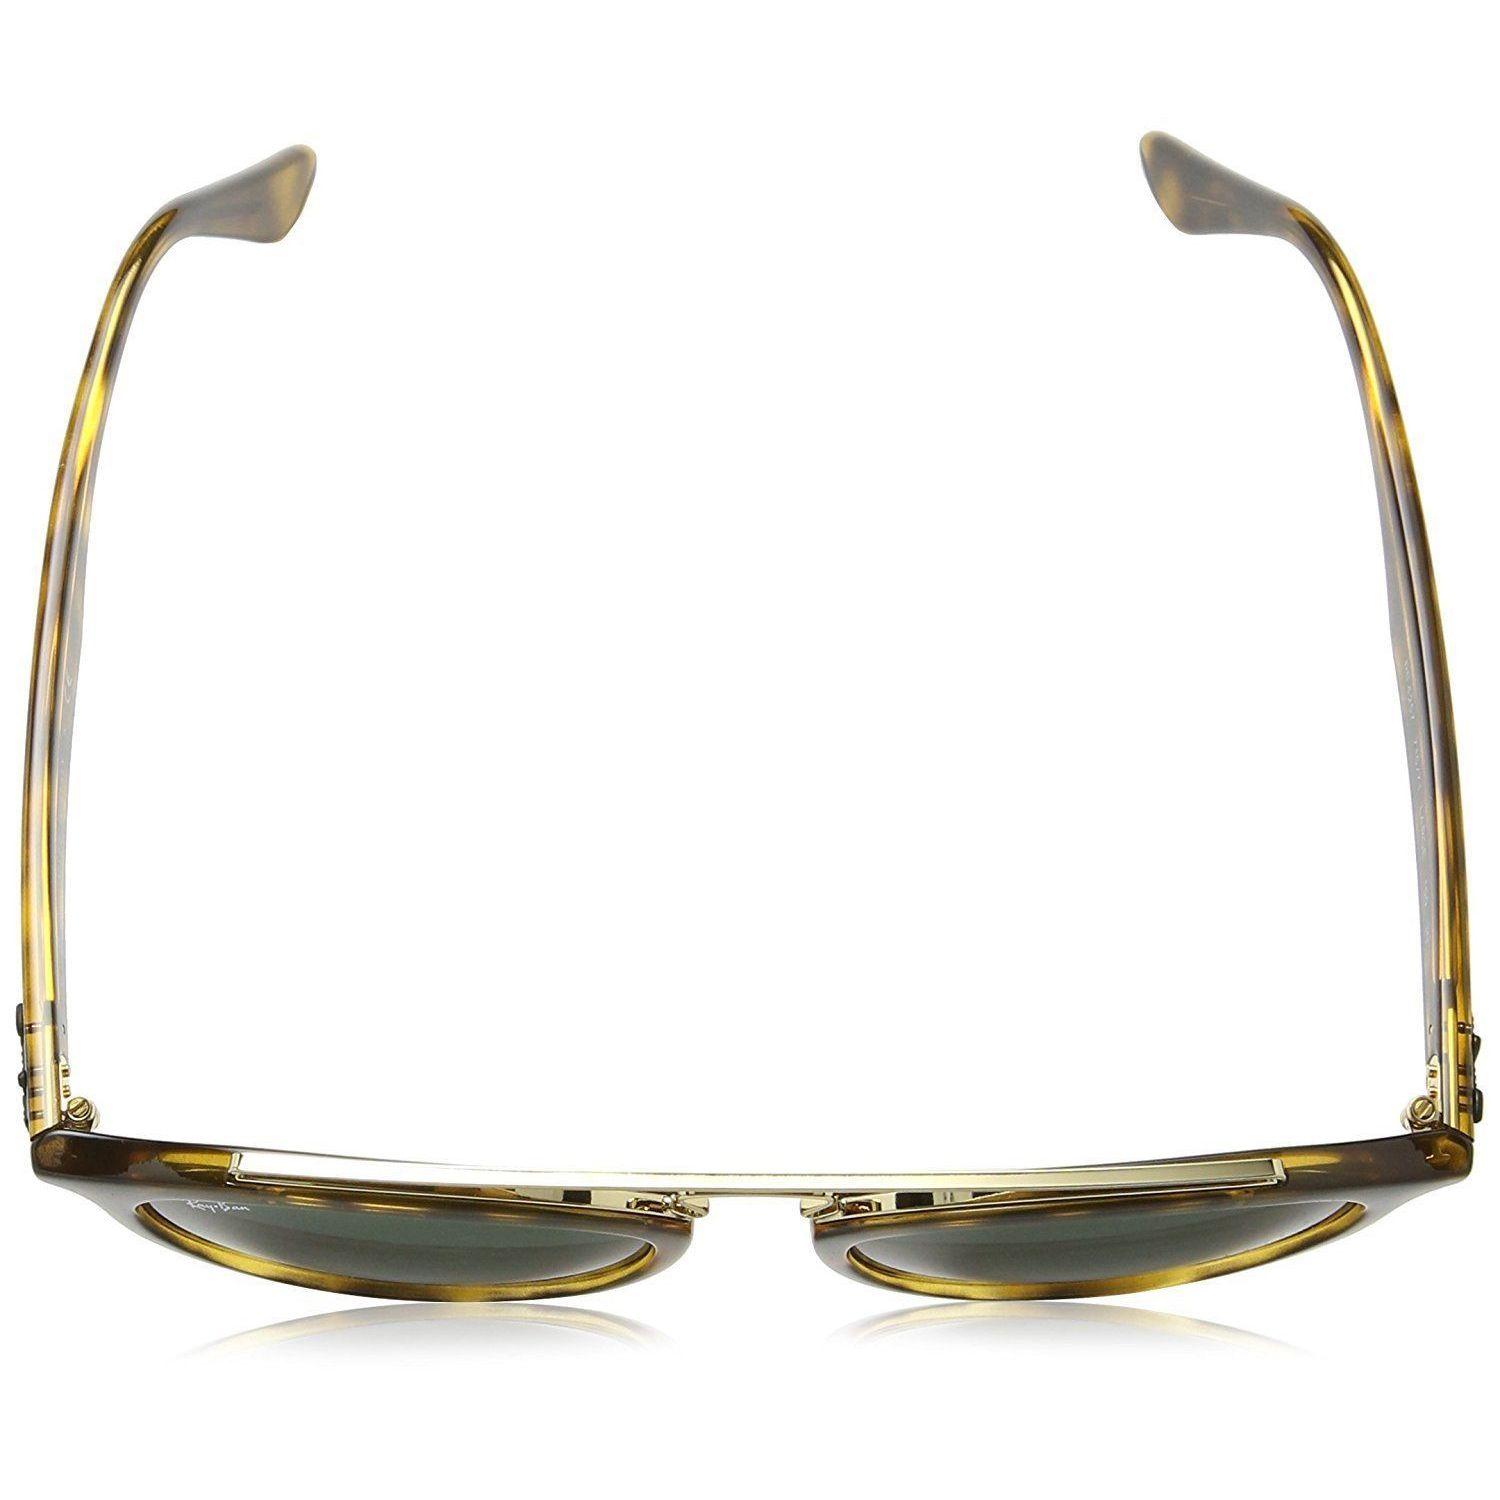 273682ca8f Shop Ray-Ban Gatsby II RB4257 710 71 Women s Tortoise Frame Green Classic  Lens Sunglasses - Free Shipping Today - Overstock - 15287404